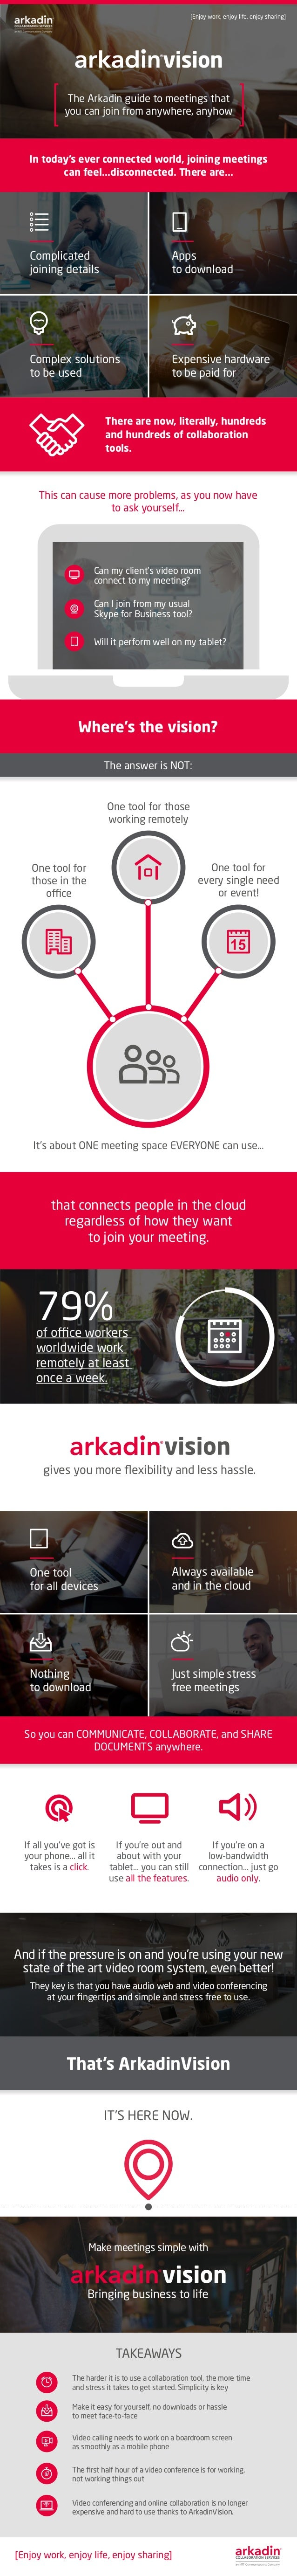 In today's ever connected world, joining meetings can feel...disconnected. There are... The Arkadin guide to meetings that...